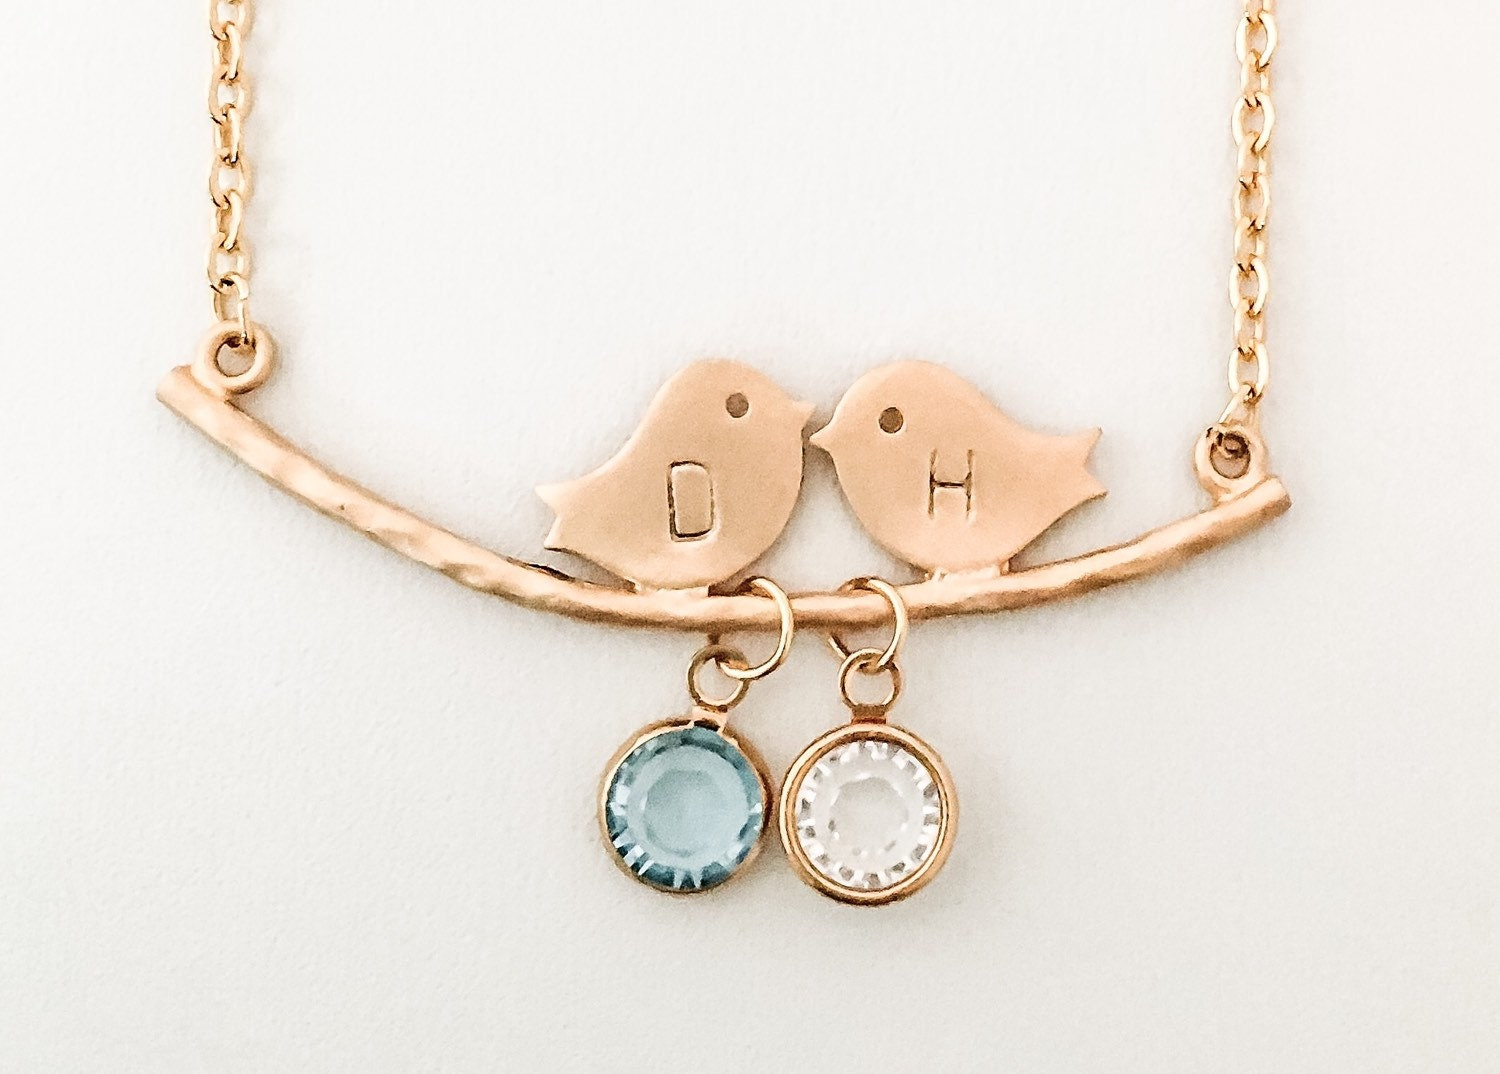 Gold Lovebird Necklace Couple Necklace Gift for